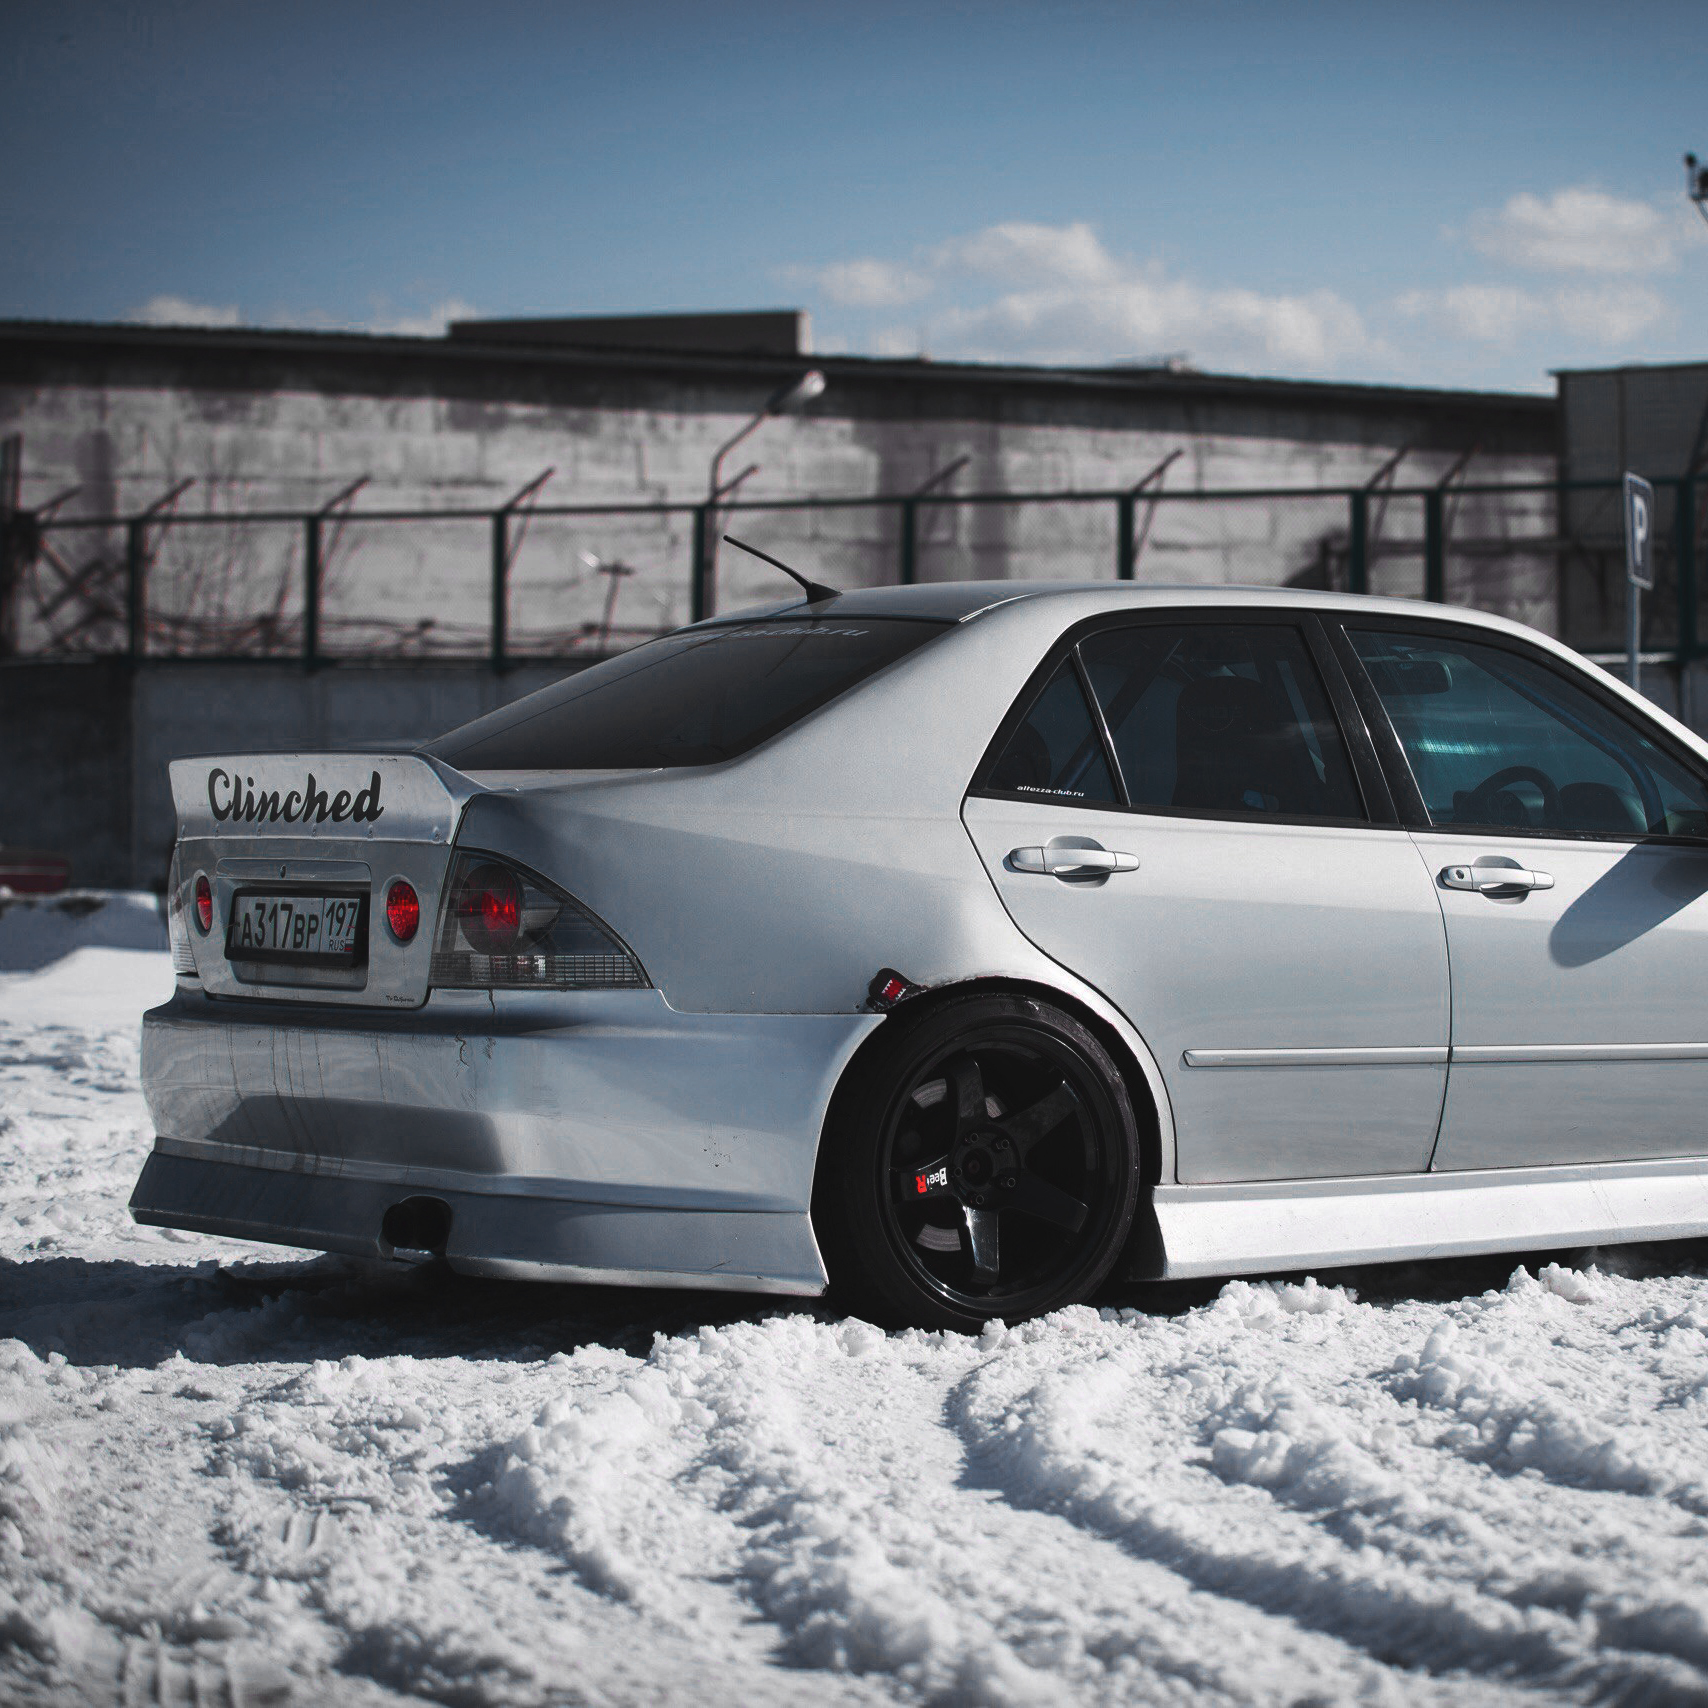 Lexus Altezza: Lexus IS300 Ducktail Spoiler By Clinched Flares